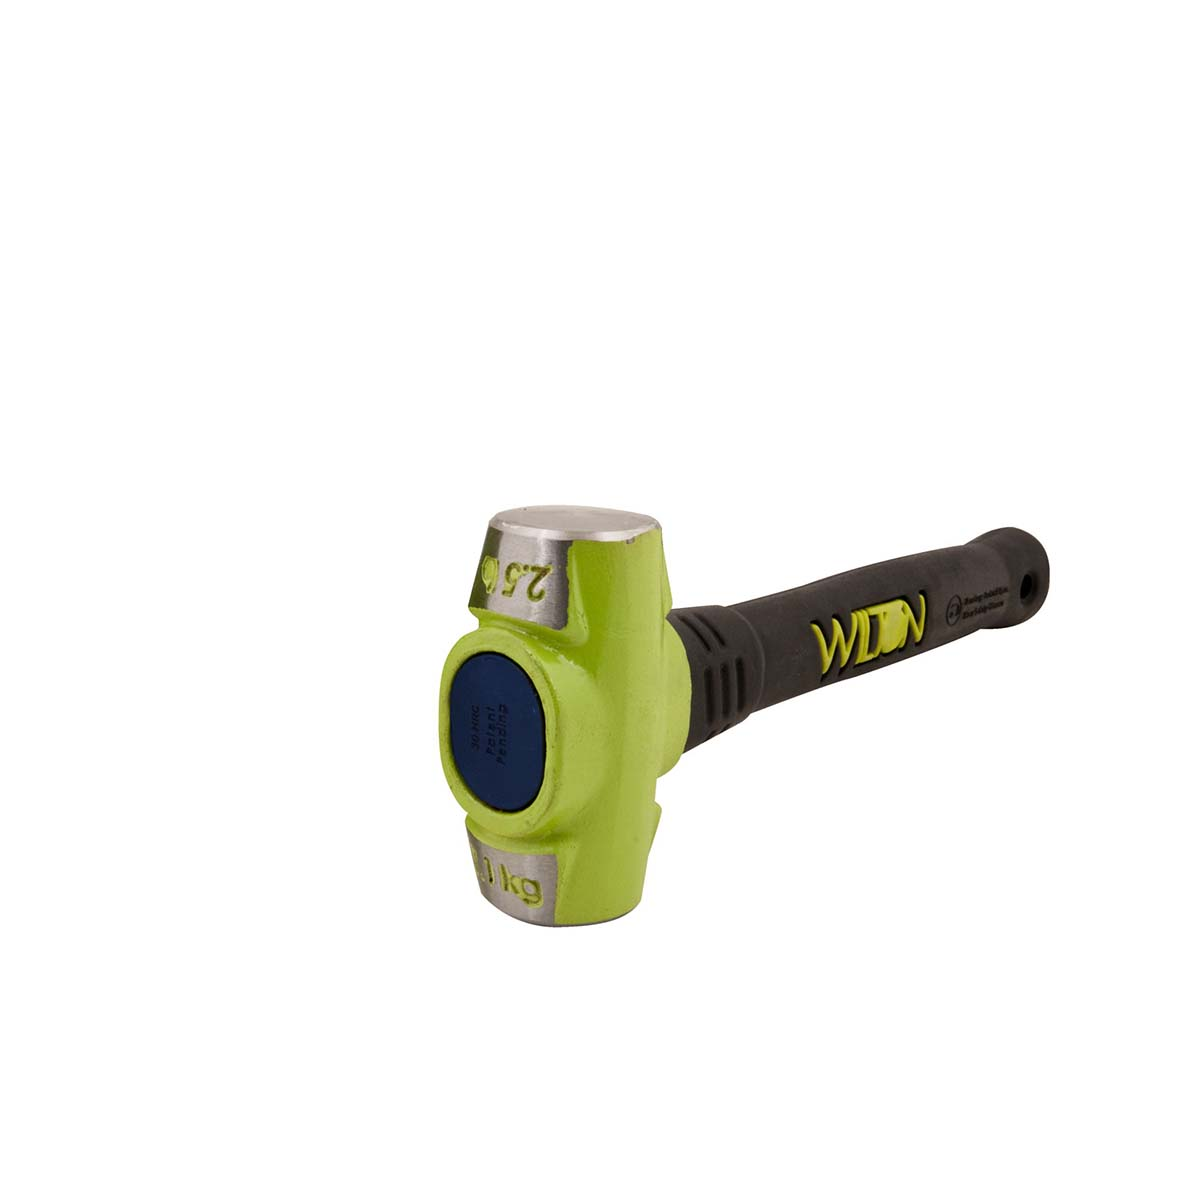 "2-1/2 LB, 12"" BASH SLEDGE HAMMER (30HRC)"